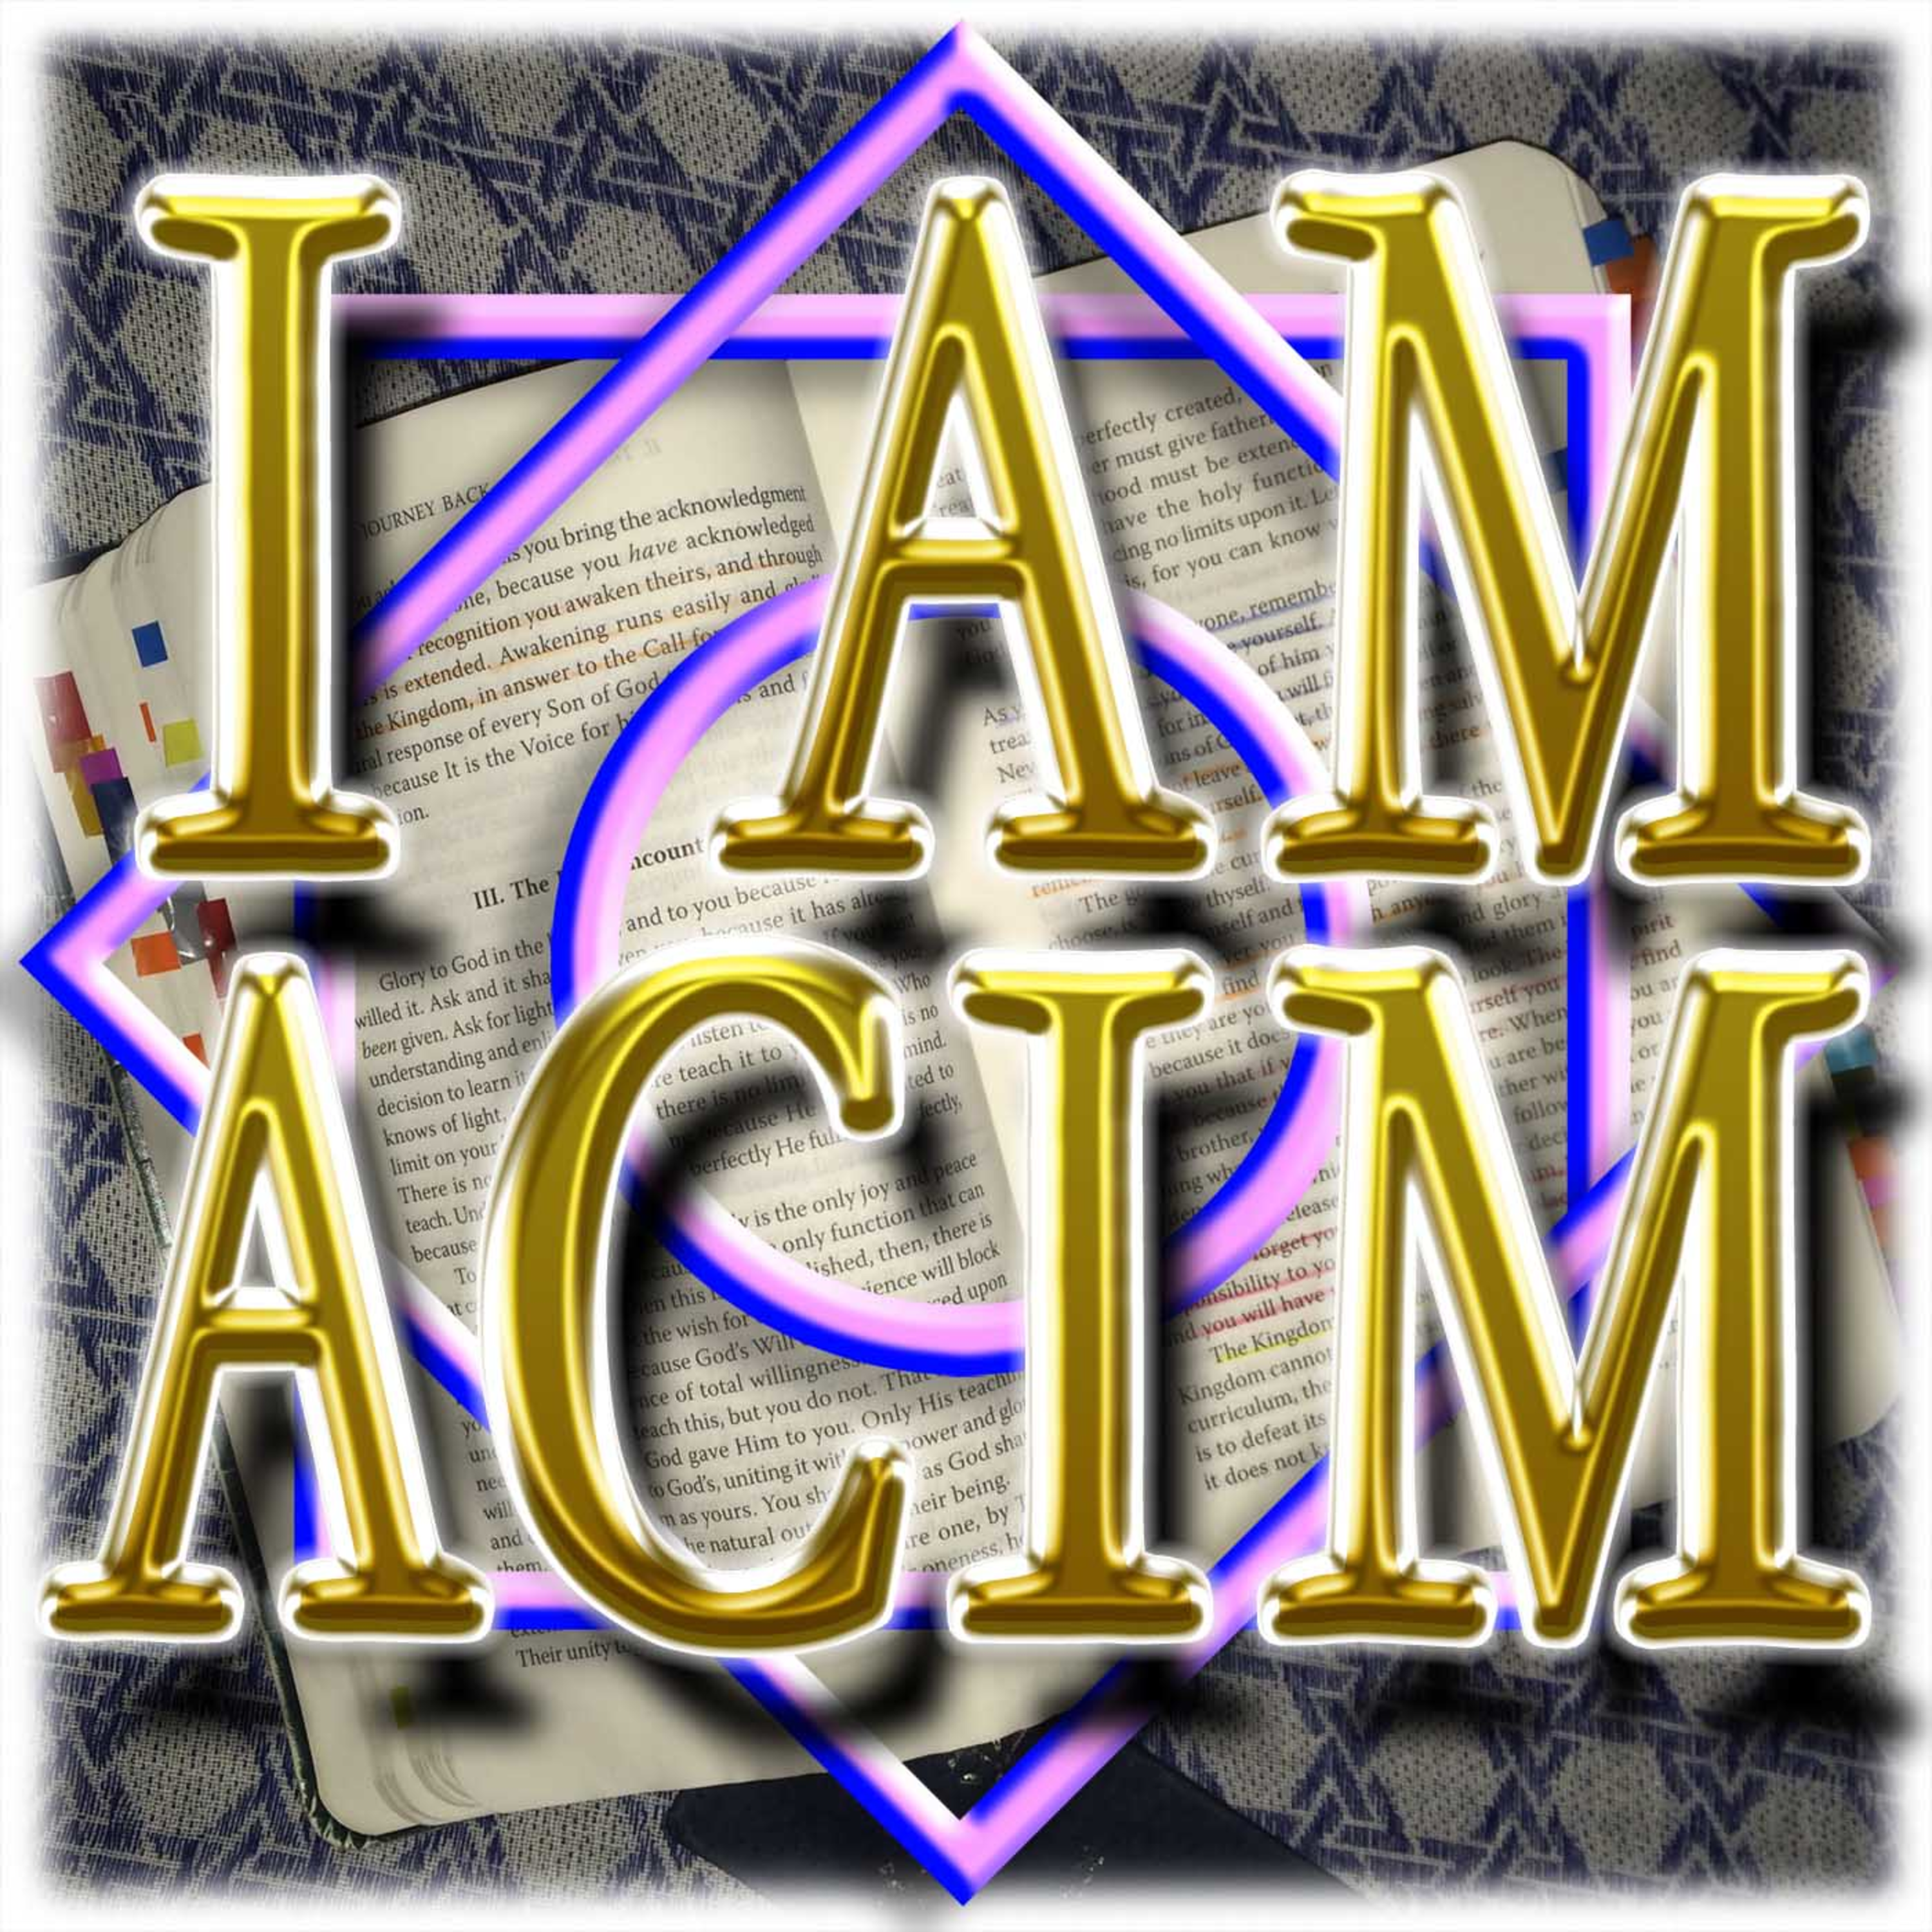 I AM: A Course in Miracles (ACIM)